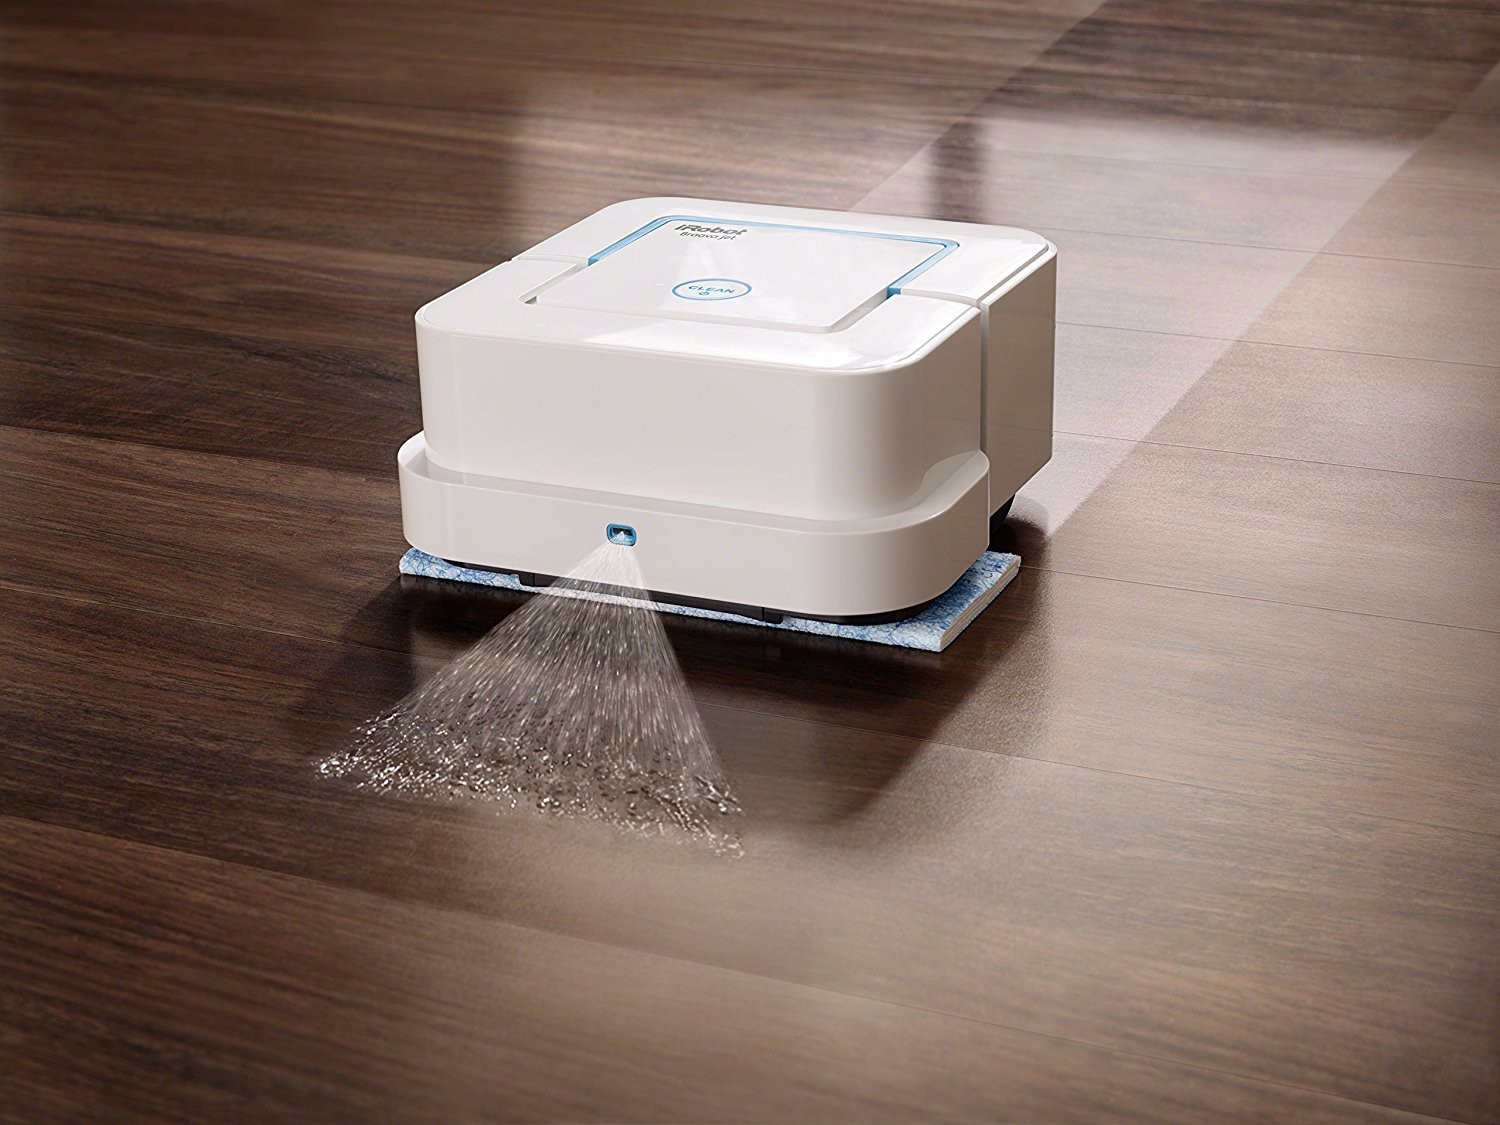 hardwood floor cleaner reviews of 12 smart home gadgets that practically clean the house for you inside pictured irobot braava jet 240 robot mop 169 available at amazonirobot